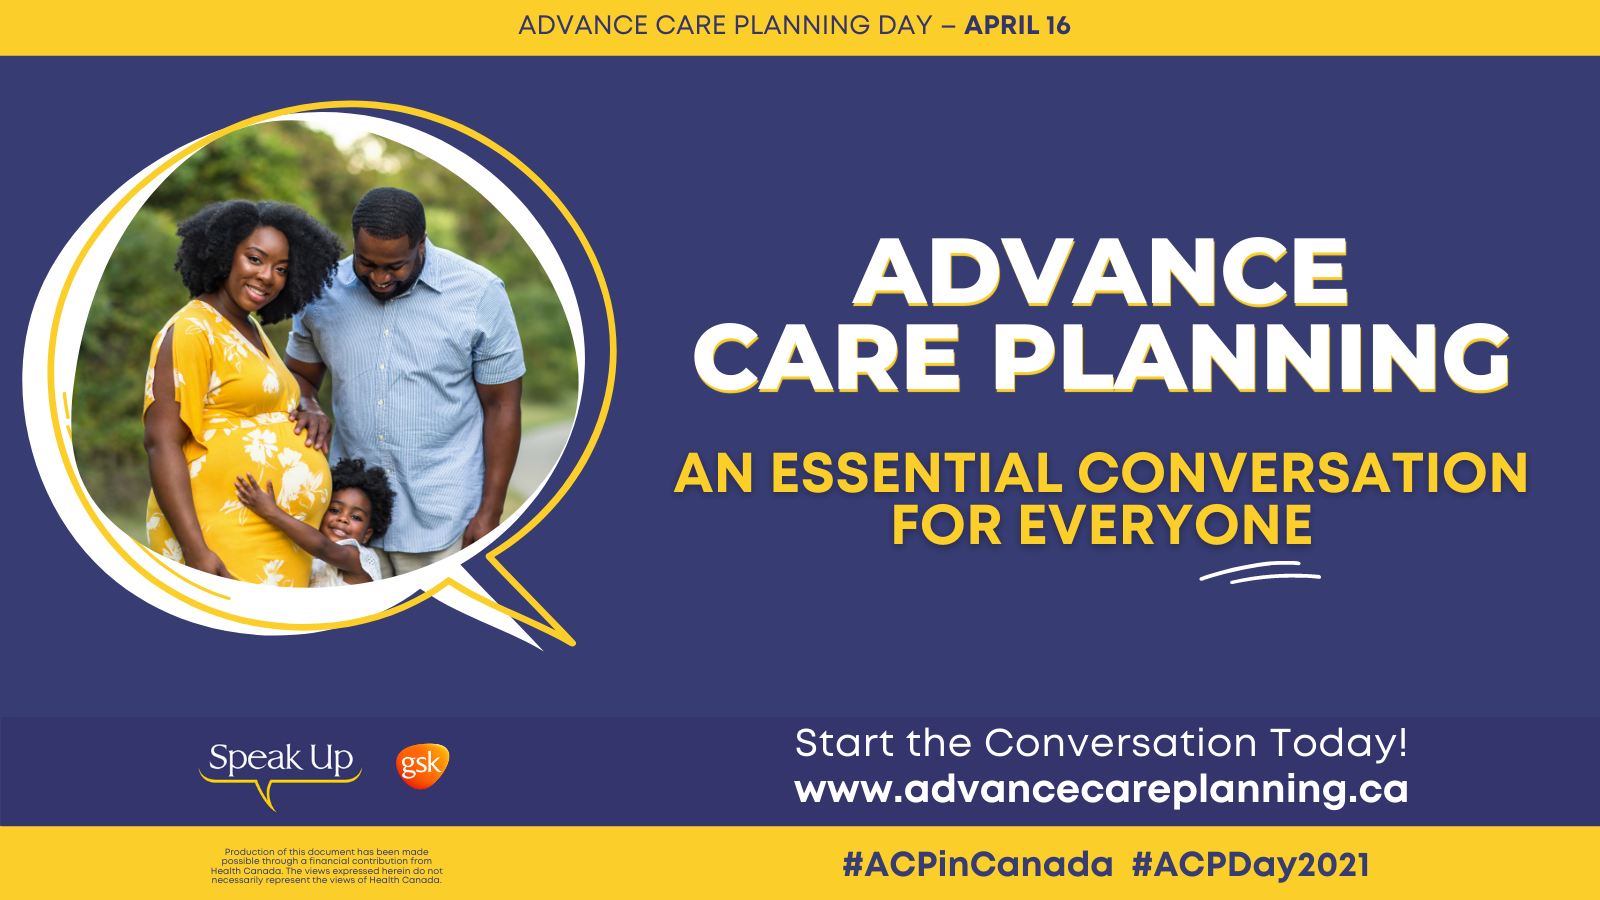 April 16th is National Advance Care Planning Day in Canada